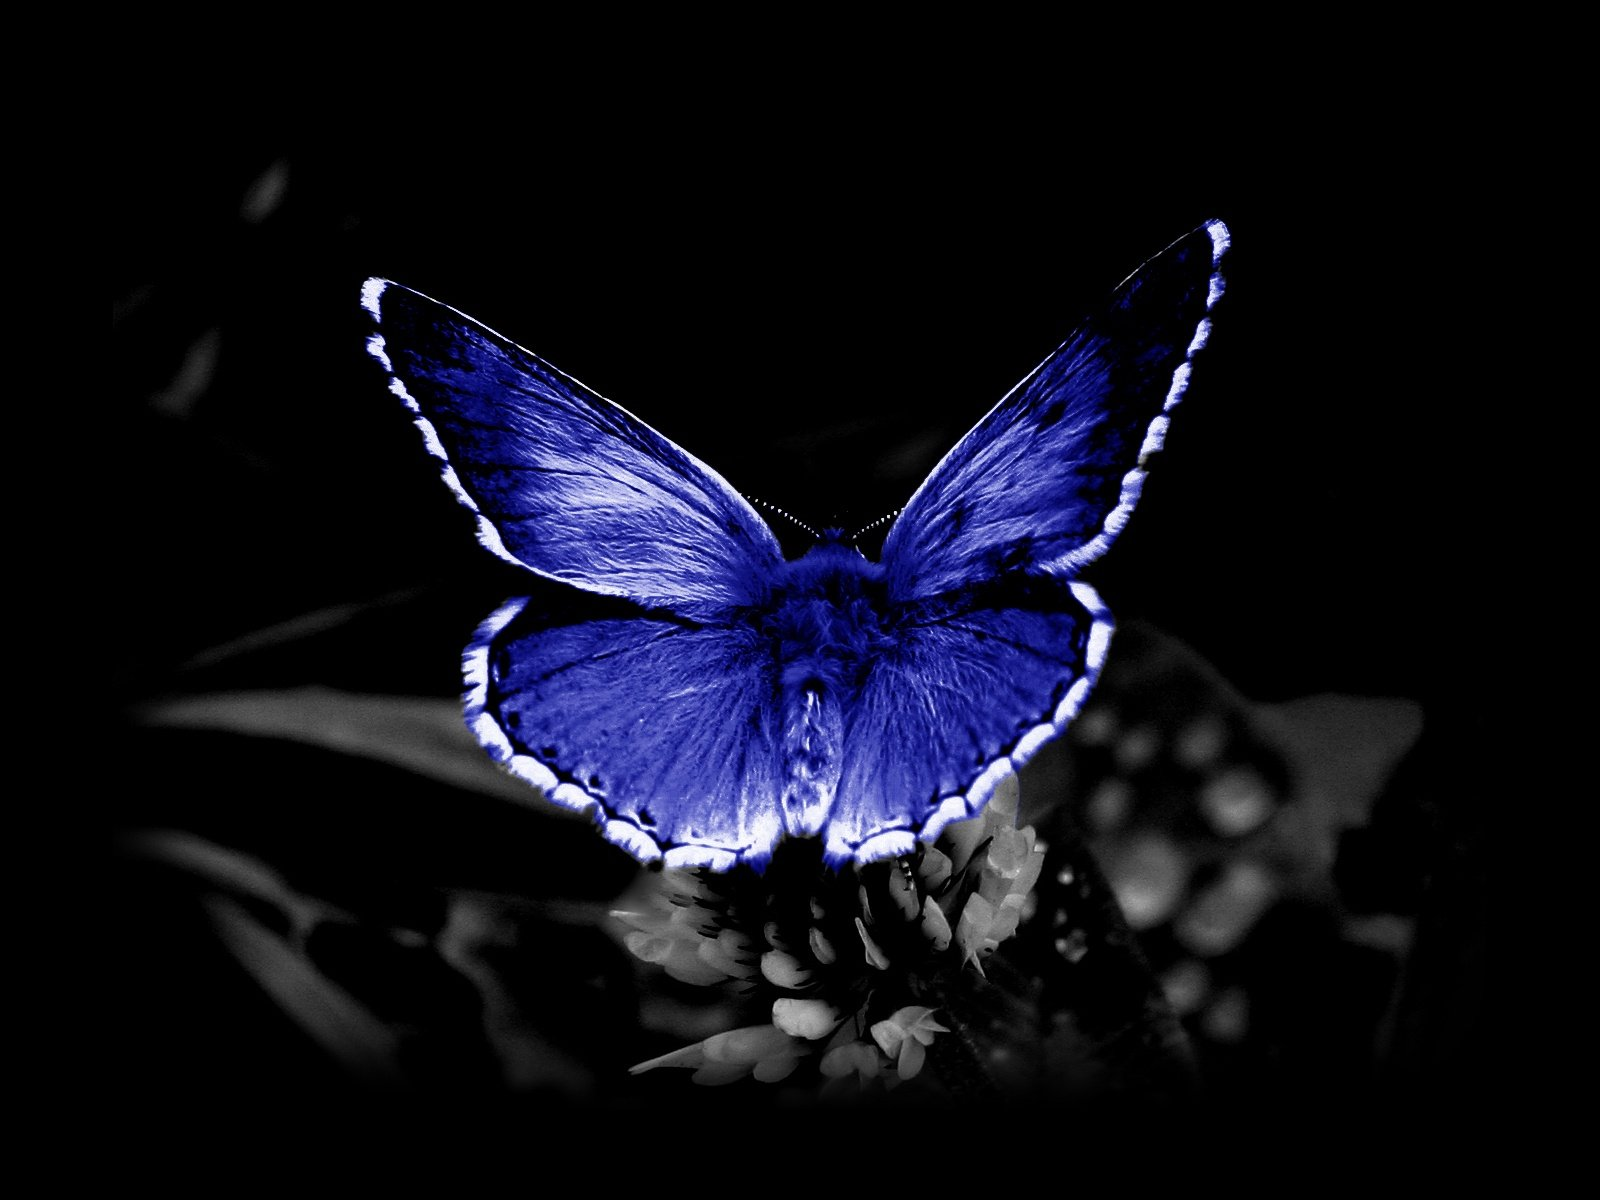 butterfly wallpapers download Toptenpackcom 1600x1200